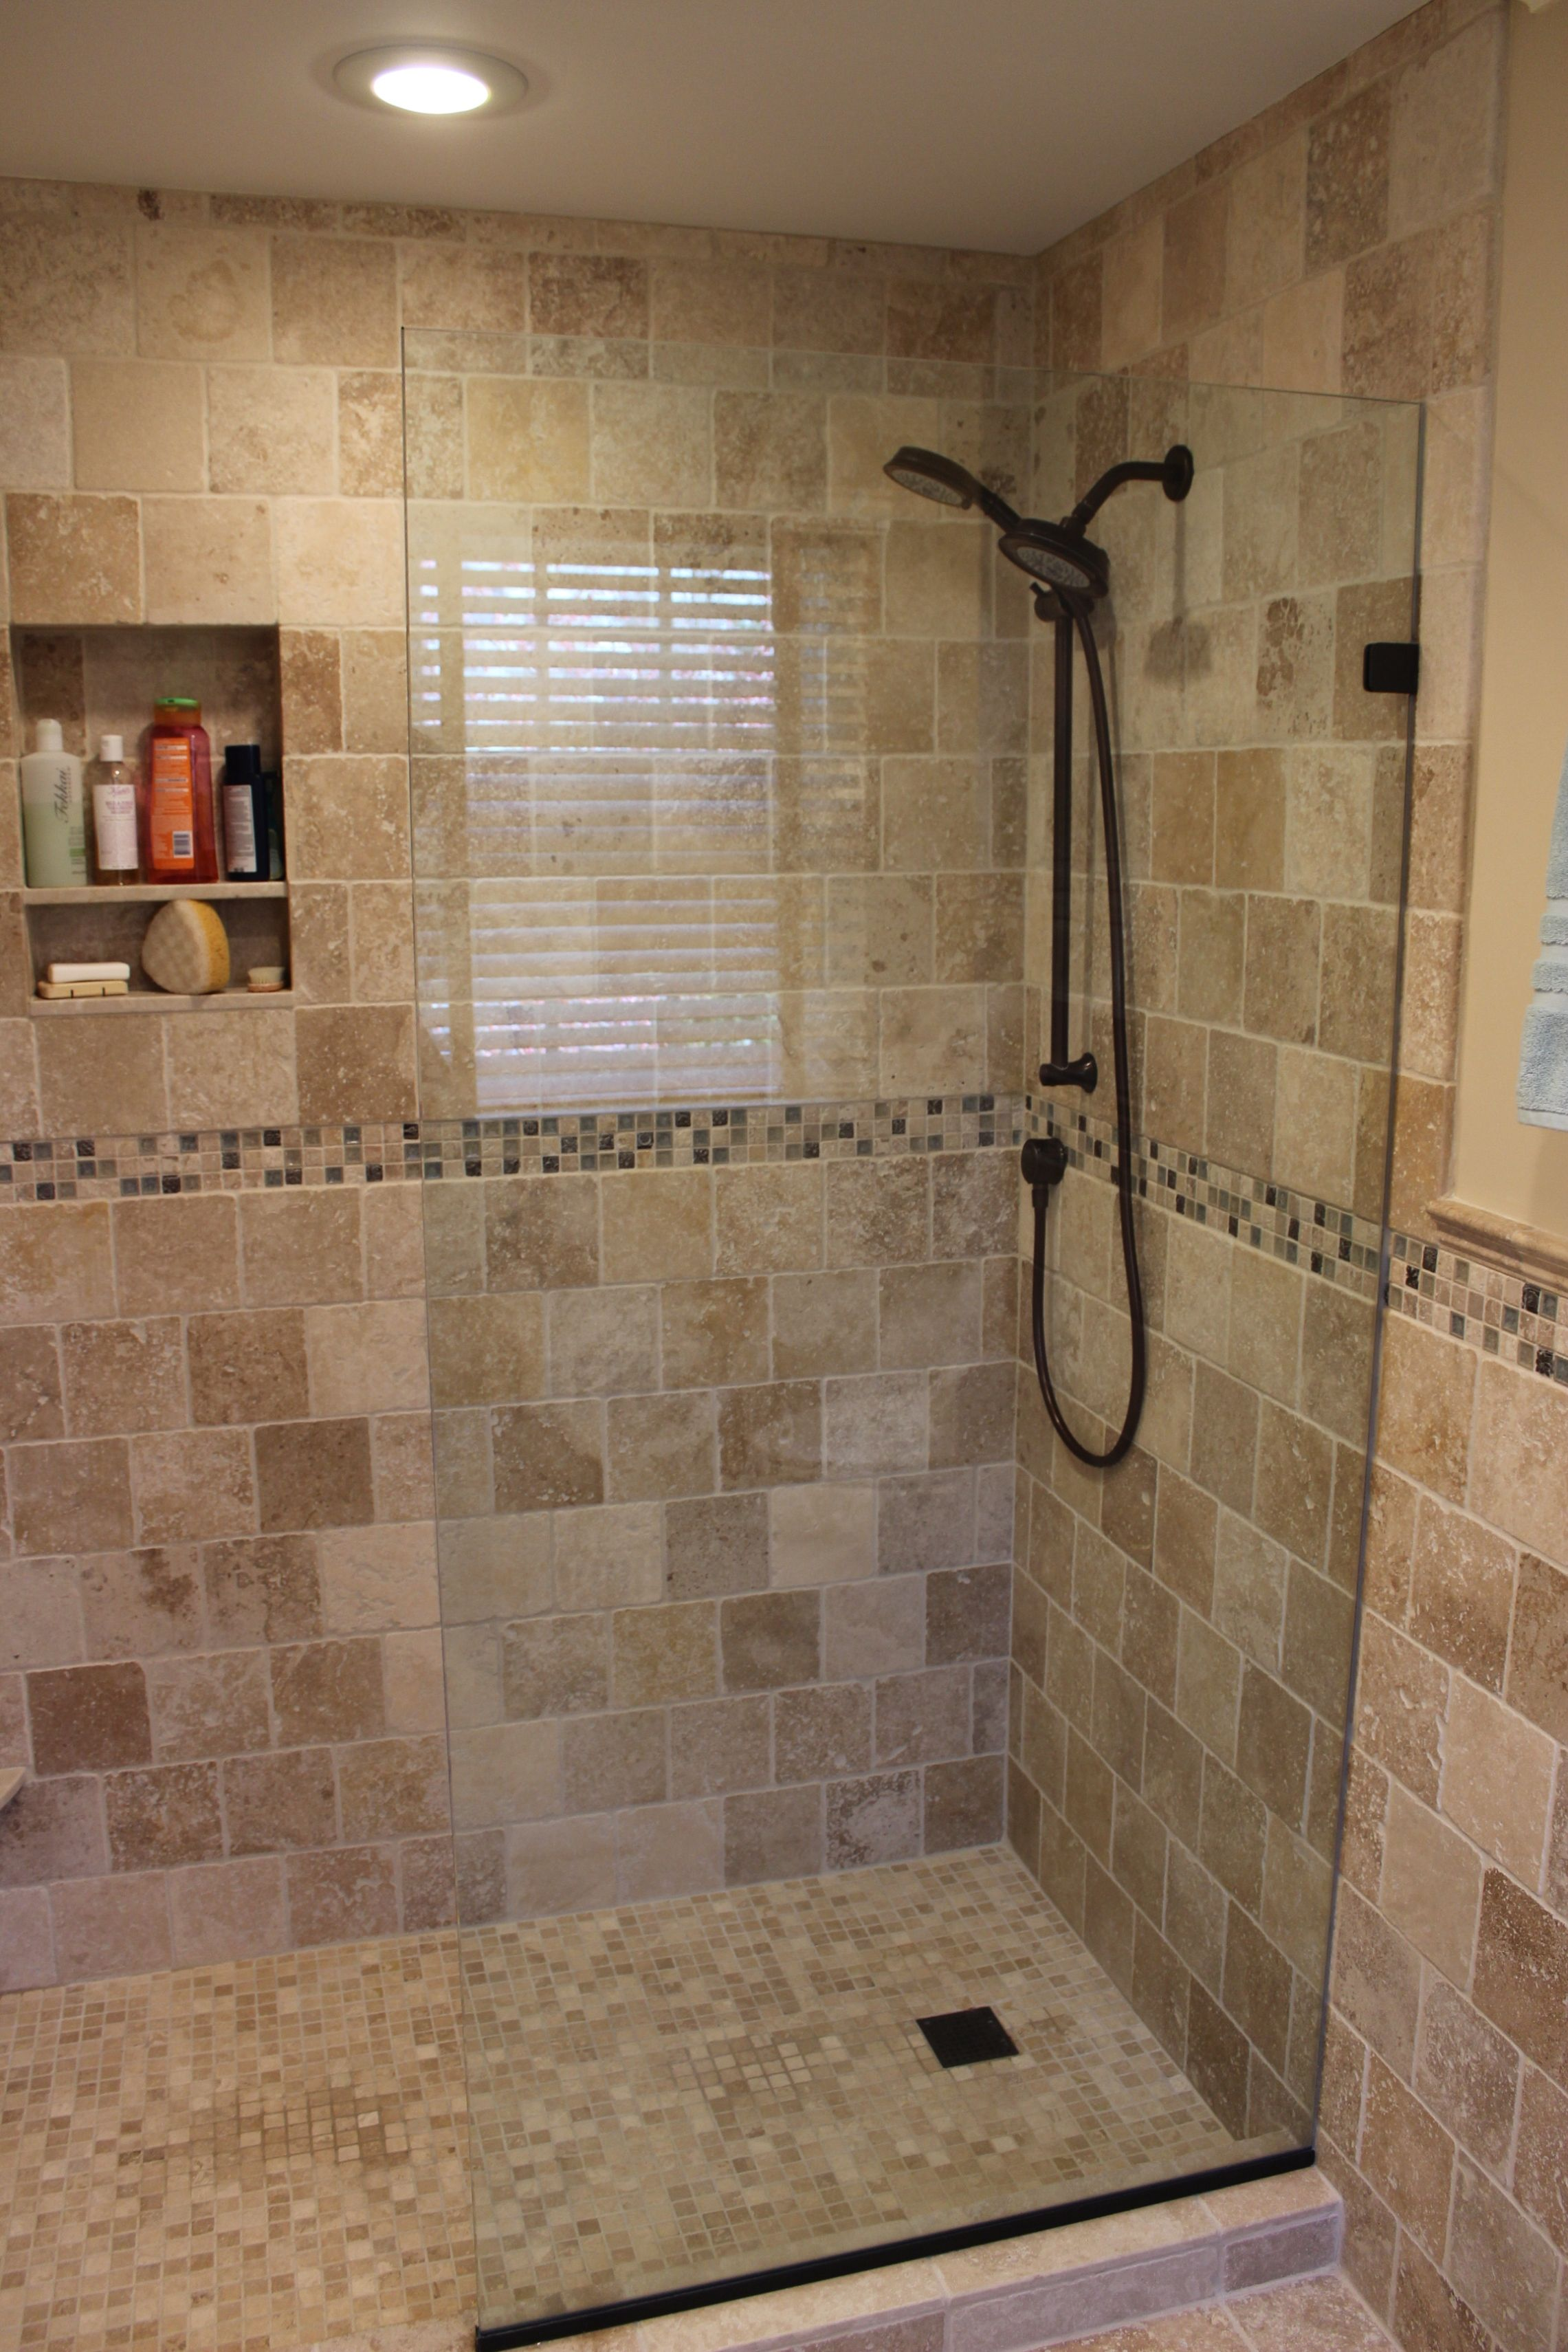 Create Photo Gallery For Website Travertine and marble tile bathroom ideas oil rubbed bronze fixtures